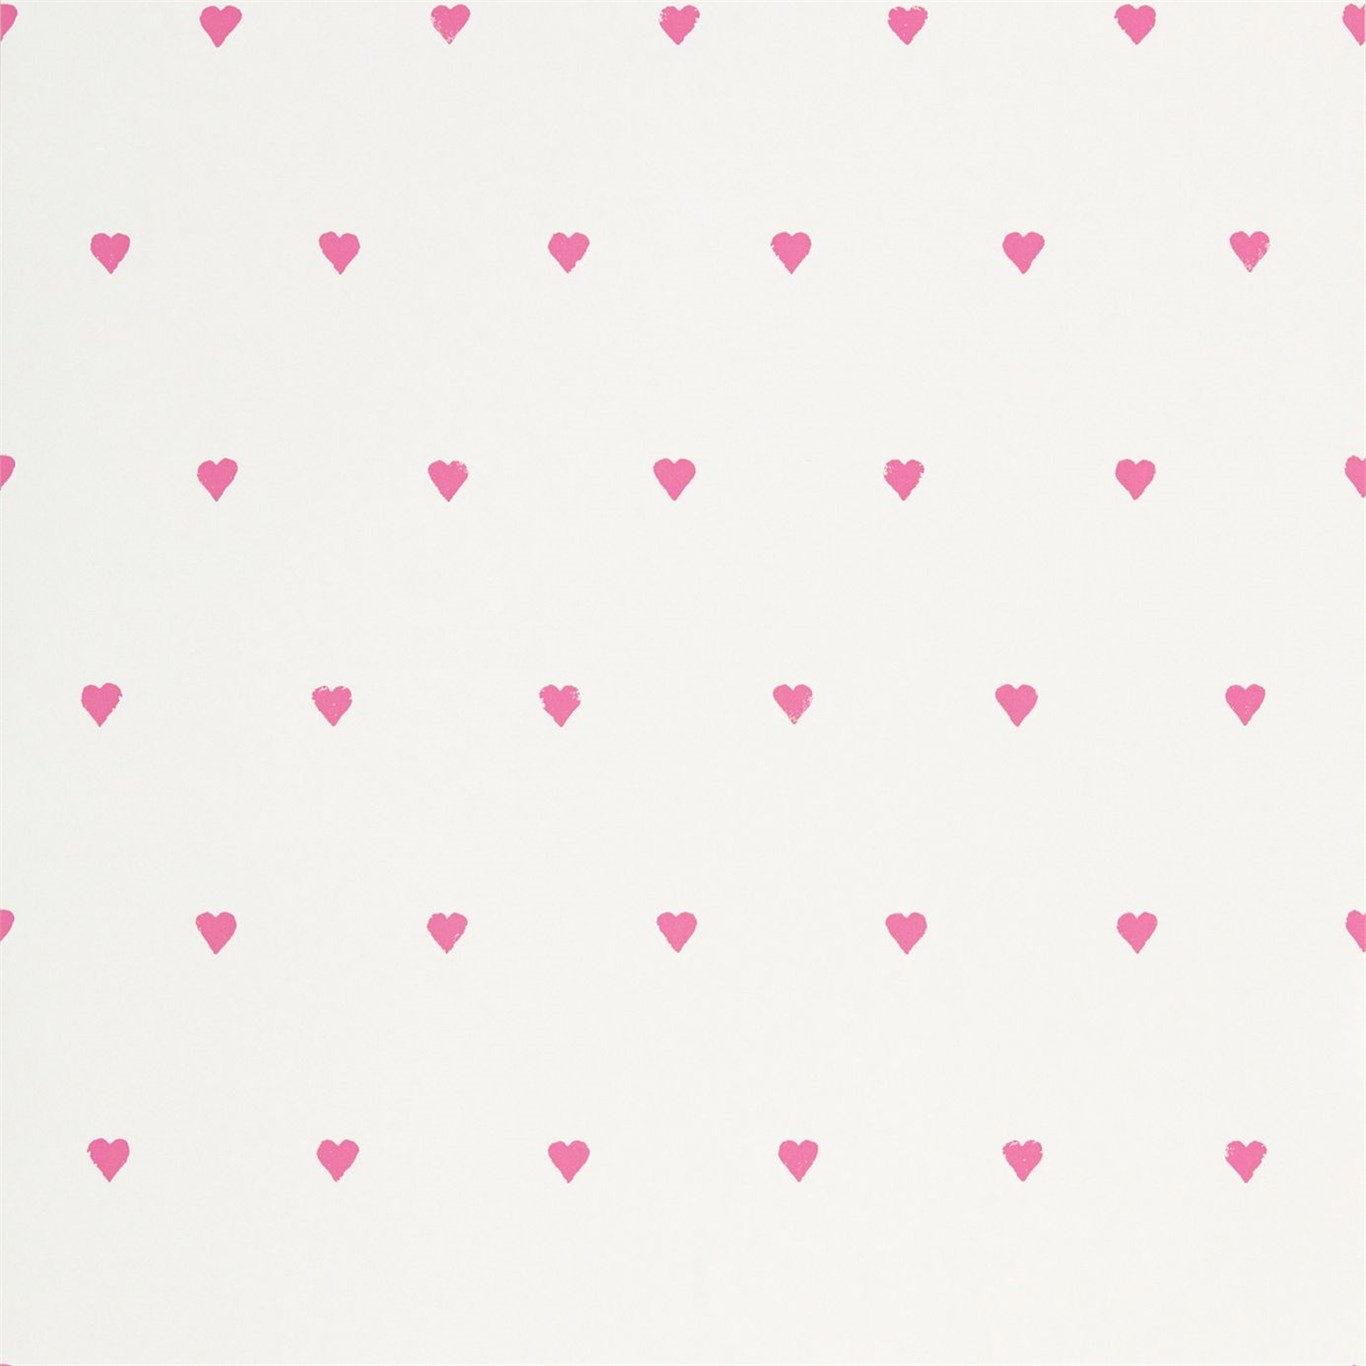 Hearts wallpaper Group (82+)